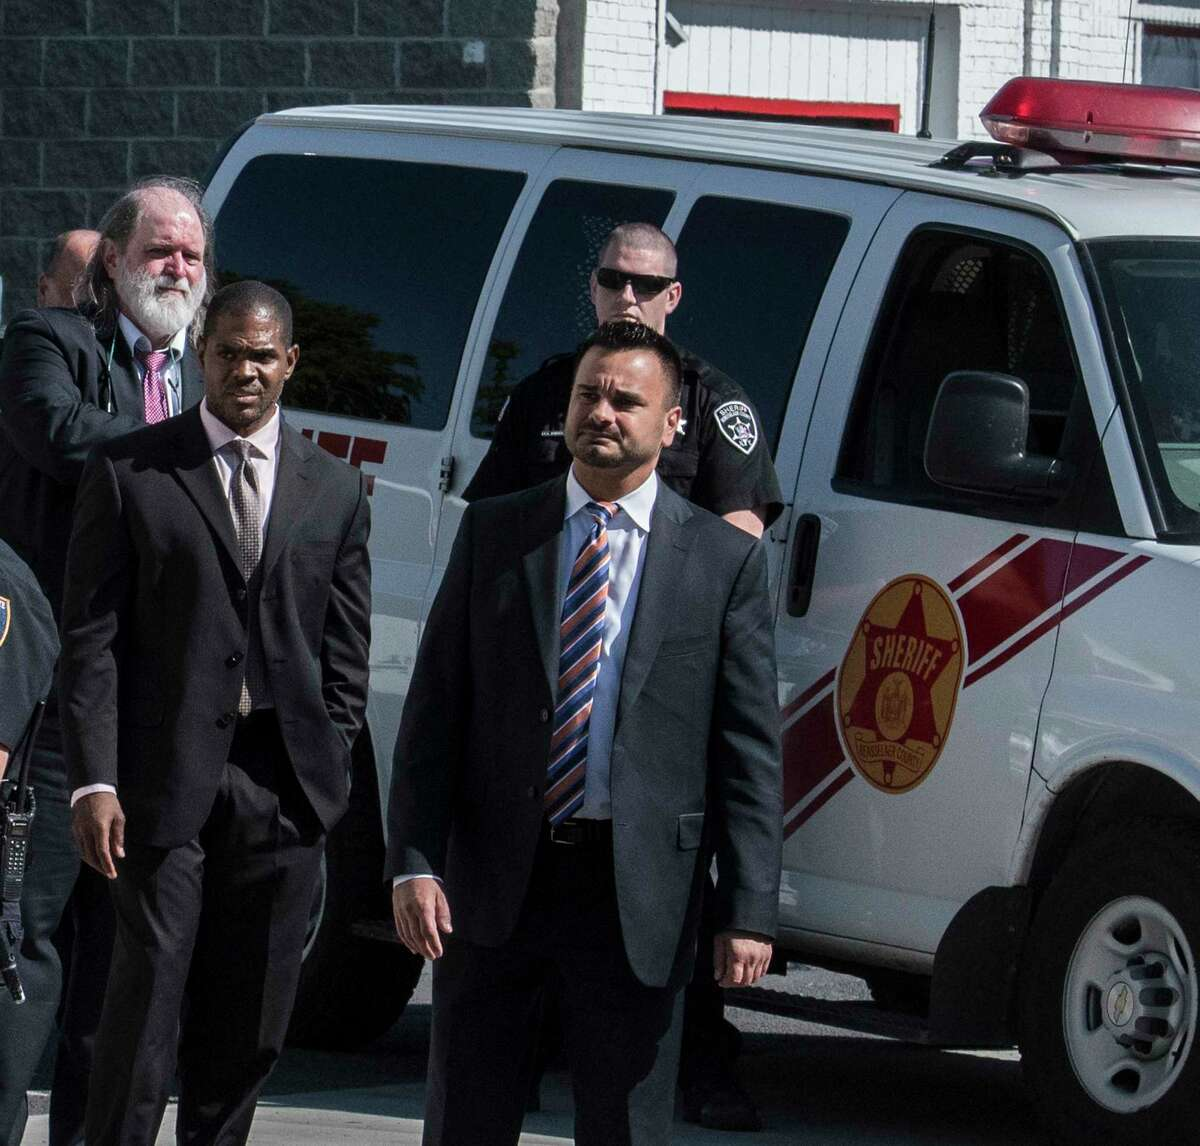 With a significant security detail New York State Supreme Court Judge Andrew Ceresia, center, looks south on 5th Avenue as a prisoner van containing Richard Wright, background, sits in sight of the entourage during a tour of the structures that were involved with the murder and arson case of Richard Wright Thursday July 12, 2018 in Troy, N.Y. (Skip Dickstein/Times Union)